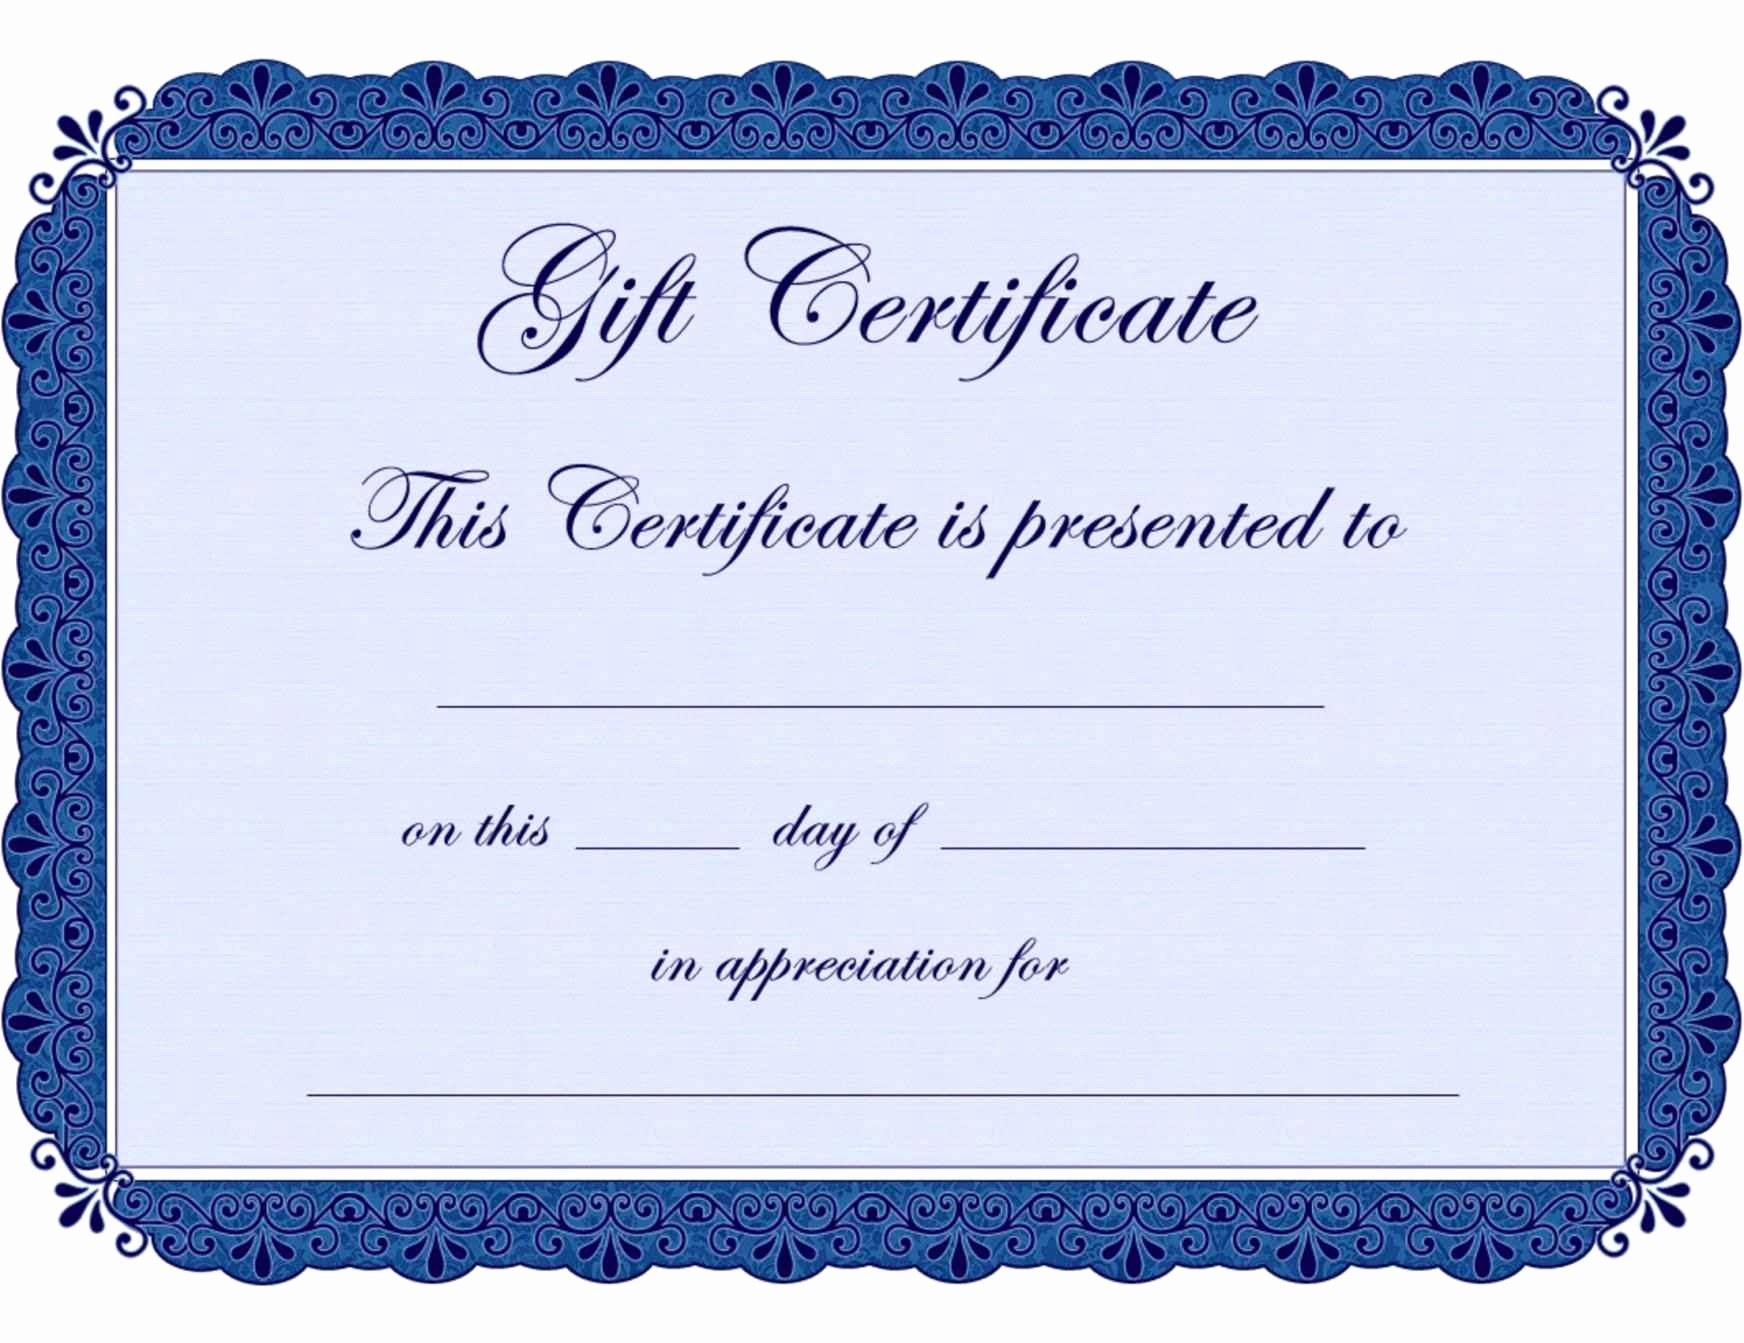 Design Your Own Gift Certificate New Design Your Own Gift Certificate Template Update234